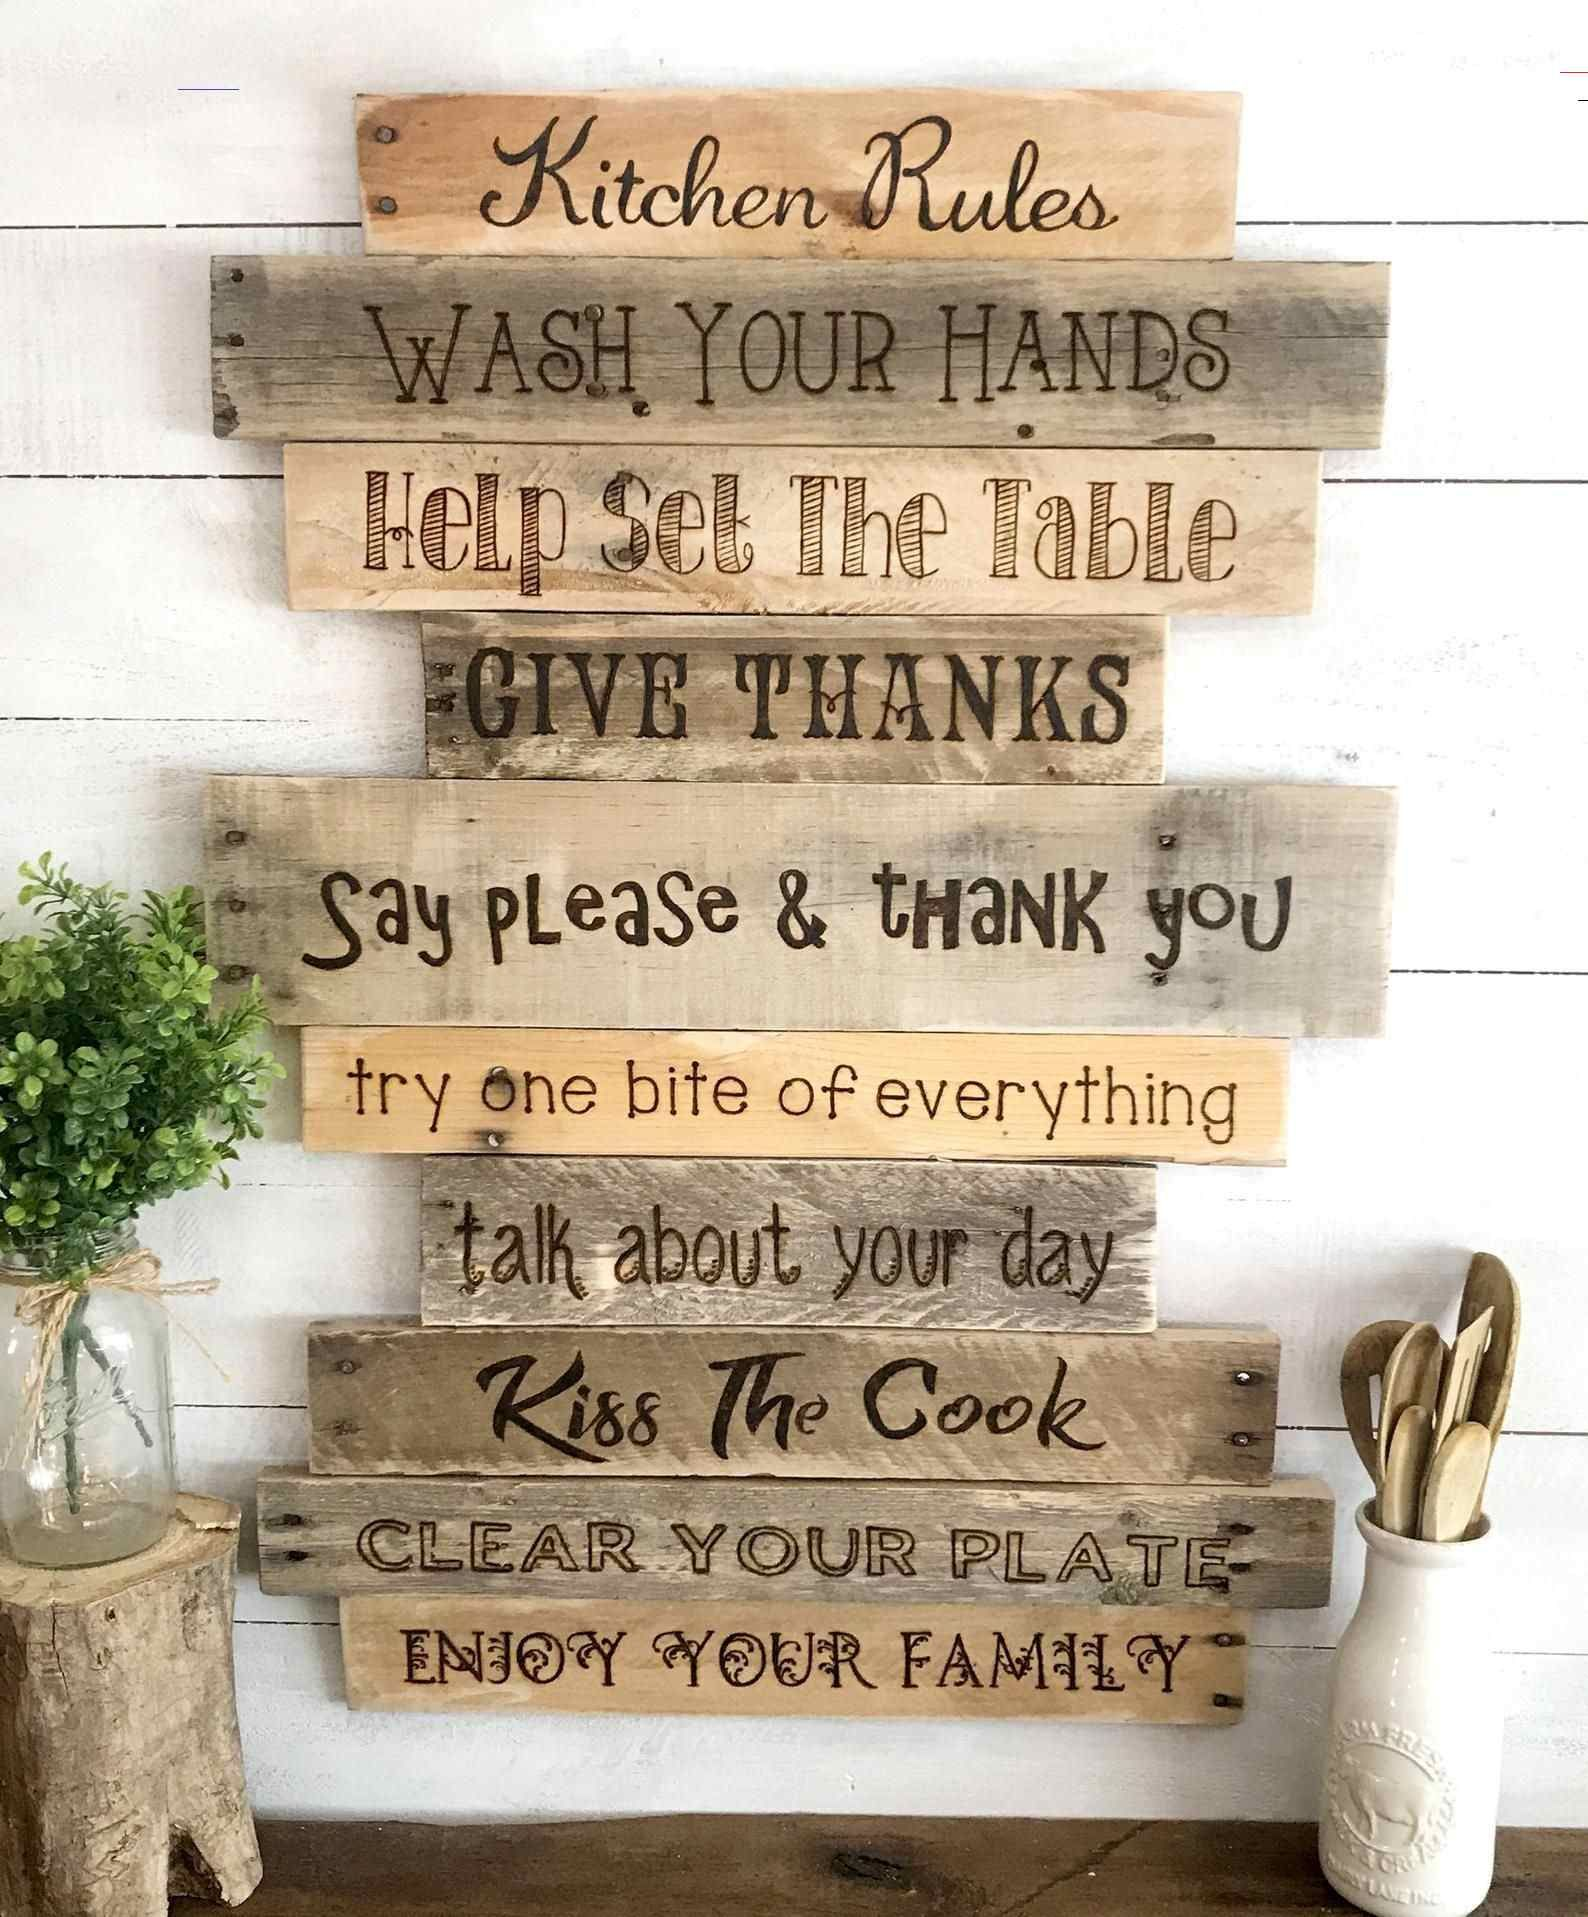 Kitchen Rules Sign Rustic Country Farmhouse Wood Wall Decor Kitchenrules Rustic Kitchen Decor Reclaimed Wood Sign Large Wall Art Farmhouse Country Home Hou In 2020